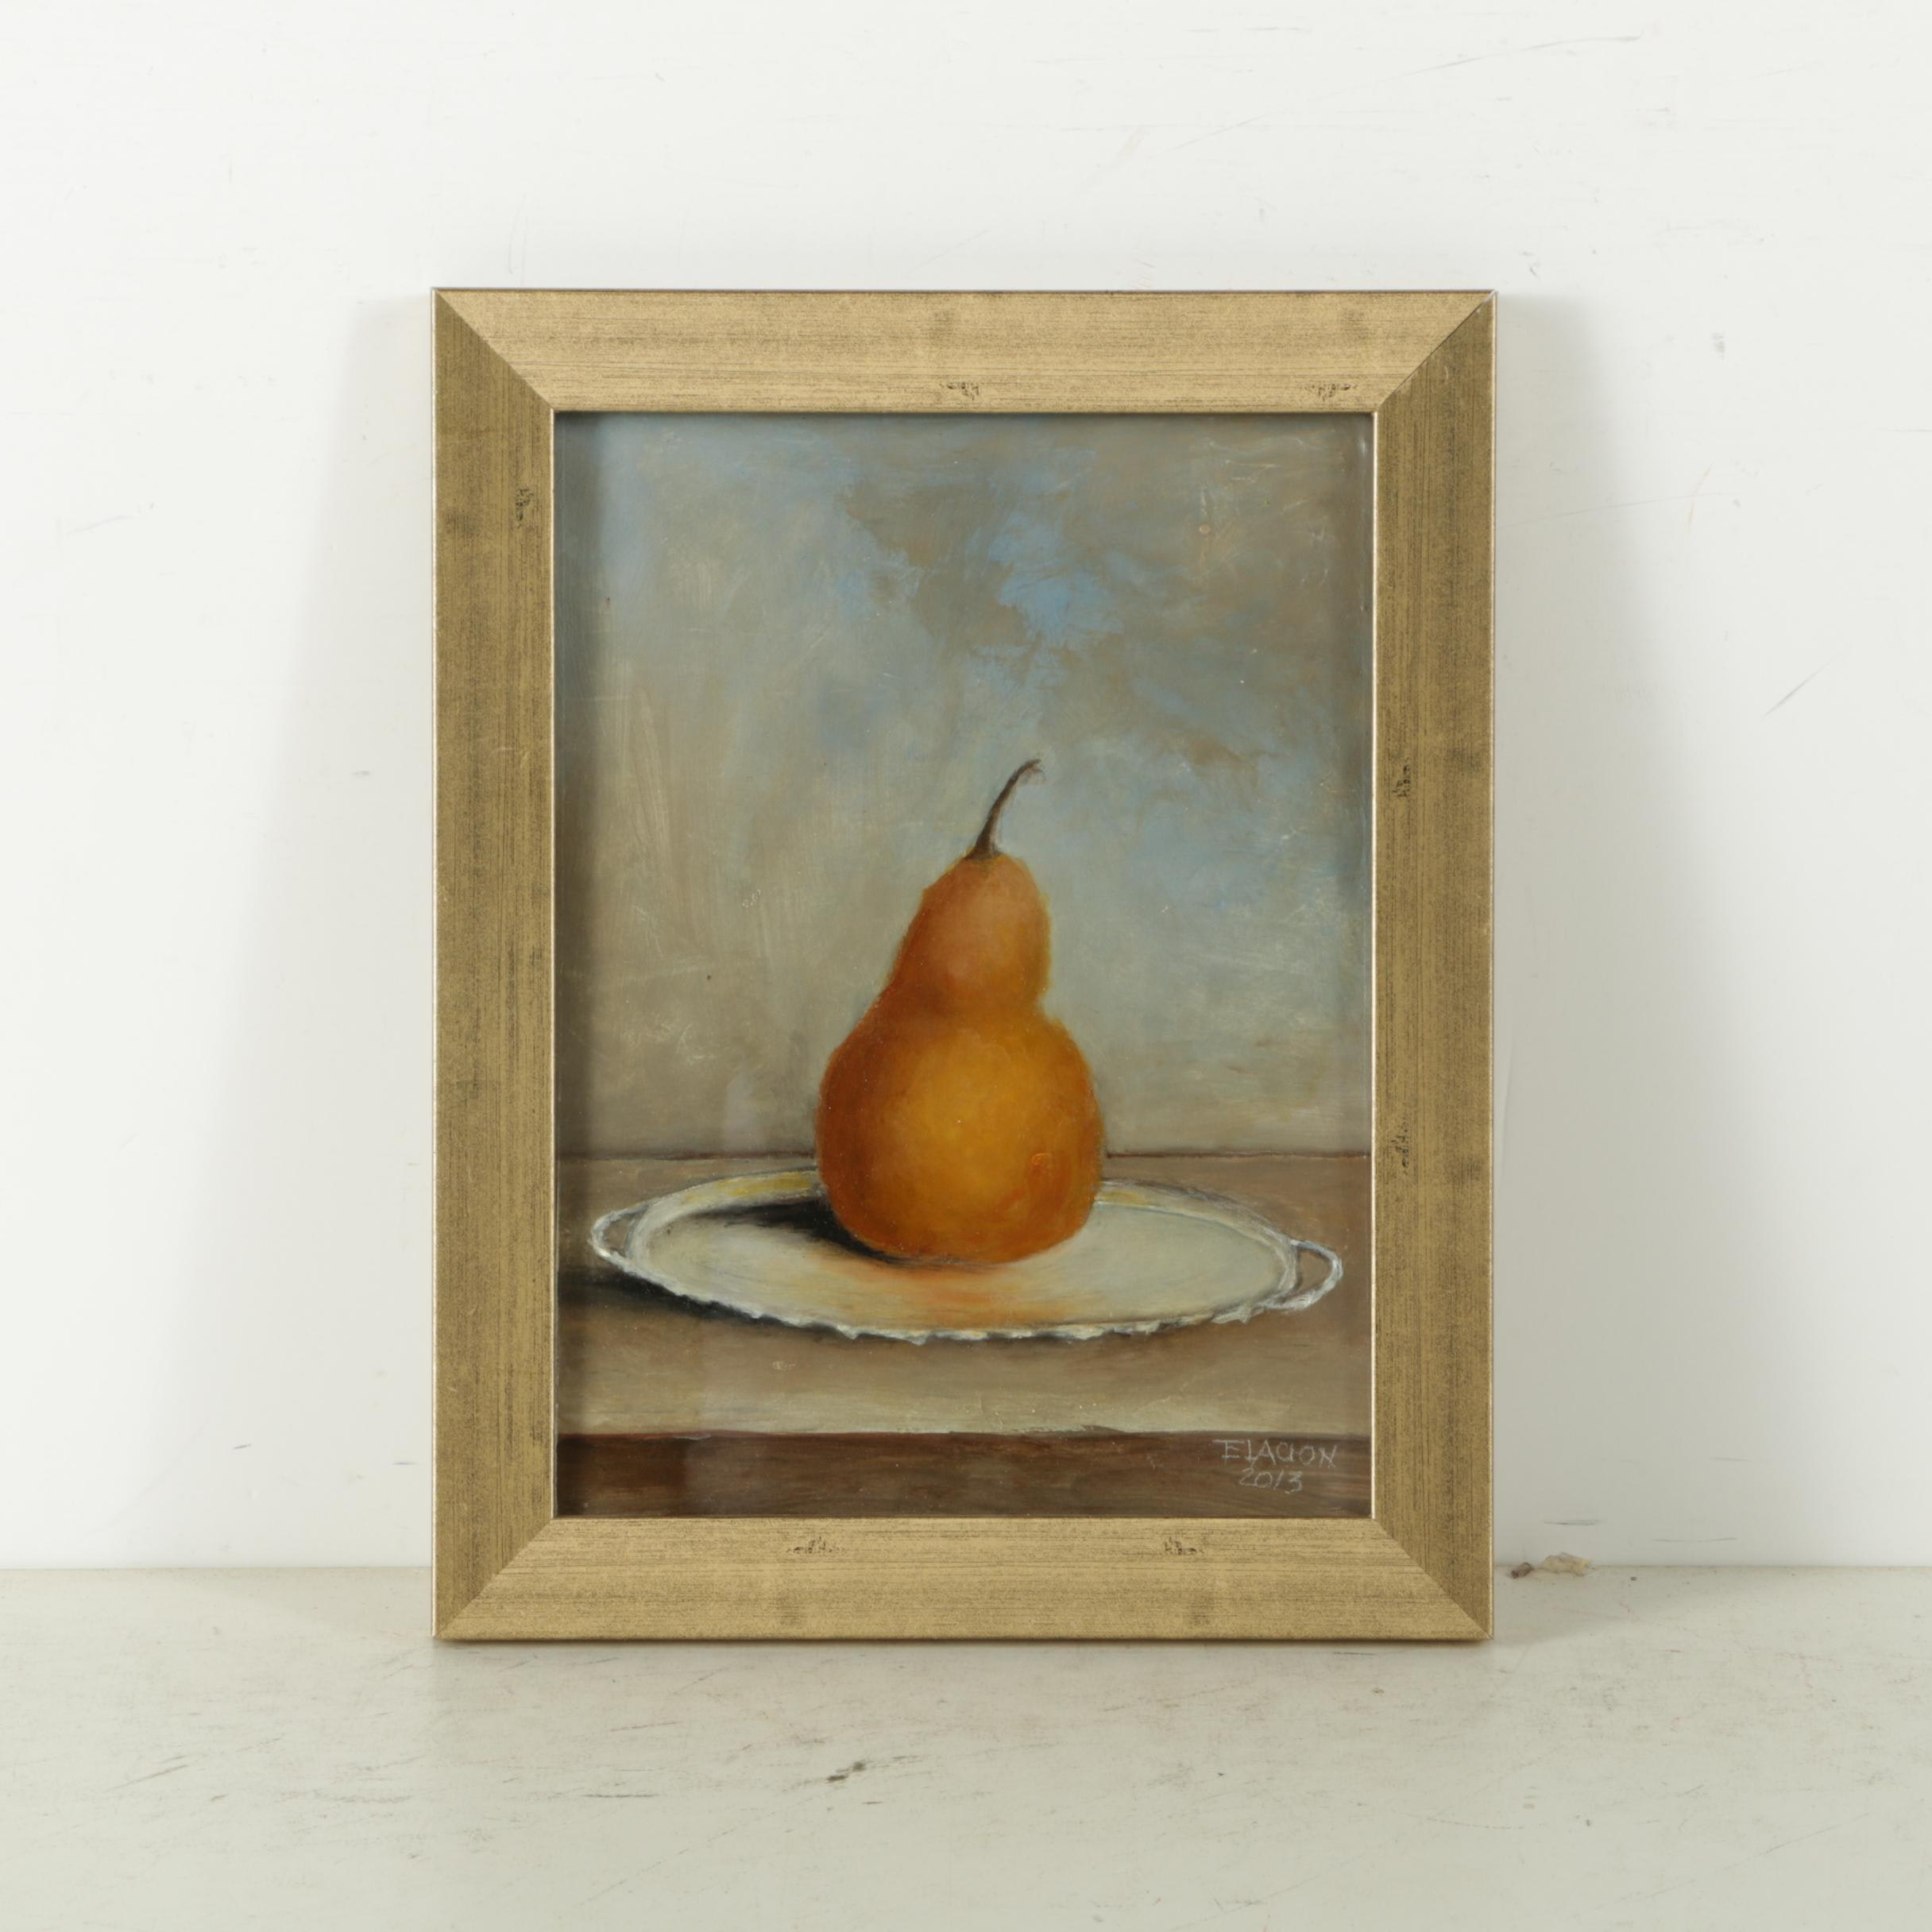 Elacion Oil Painting on Board of a Pear